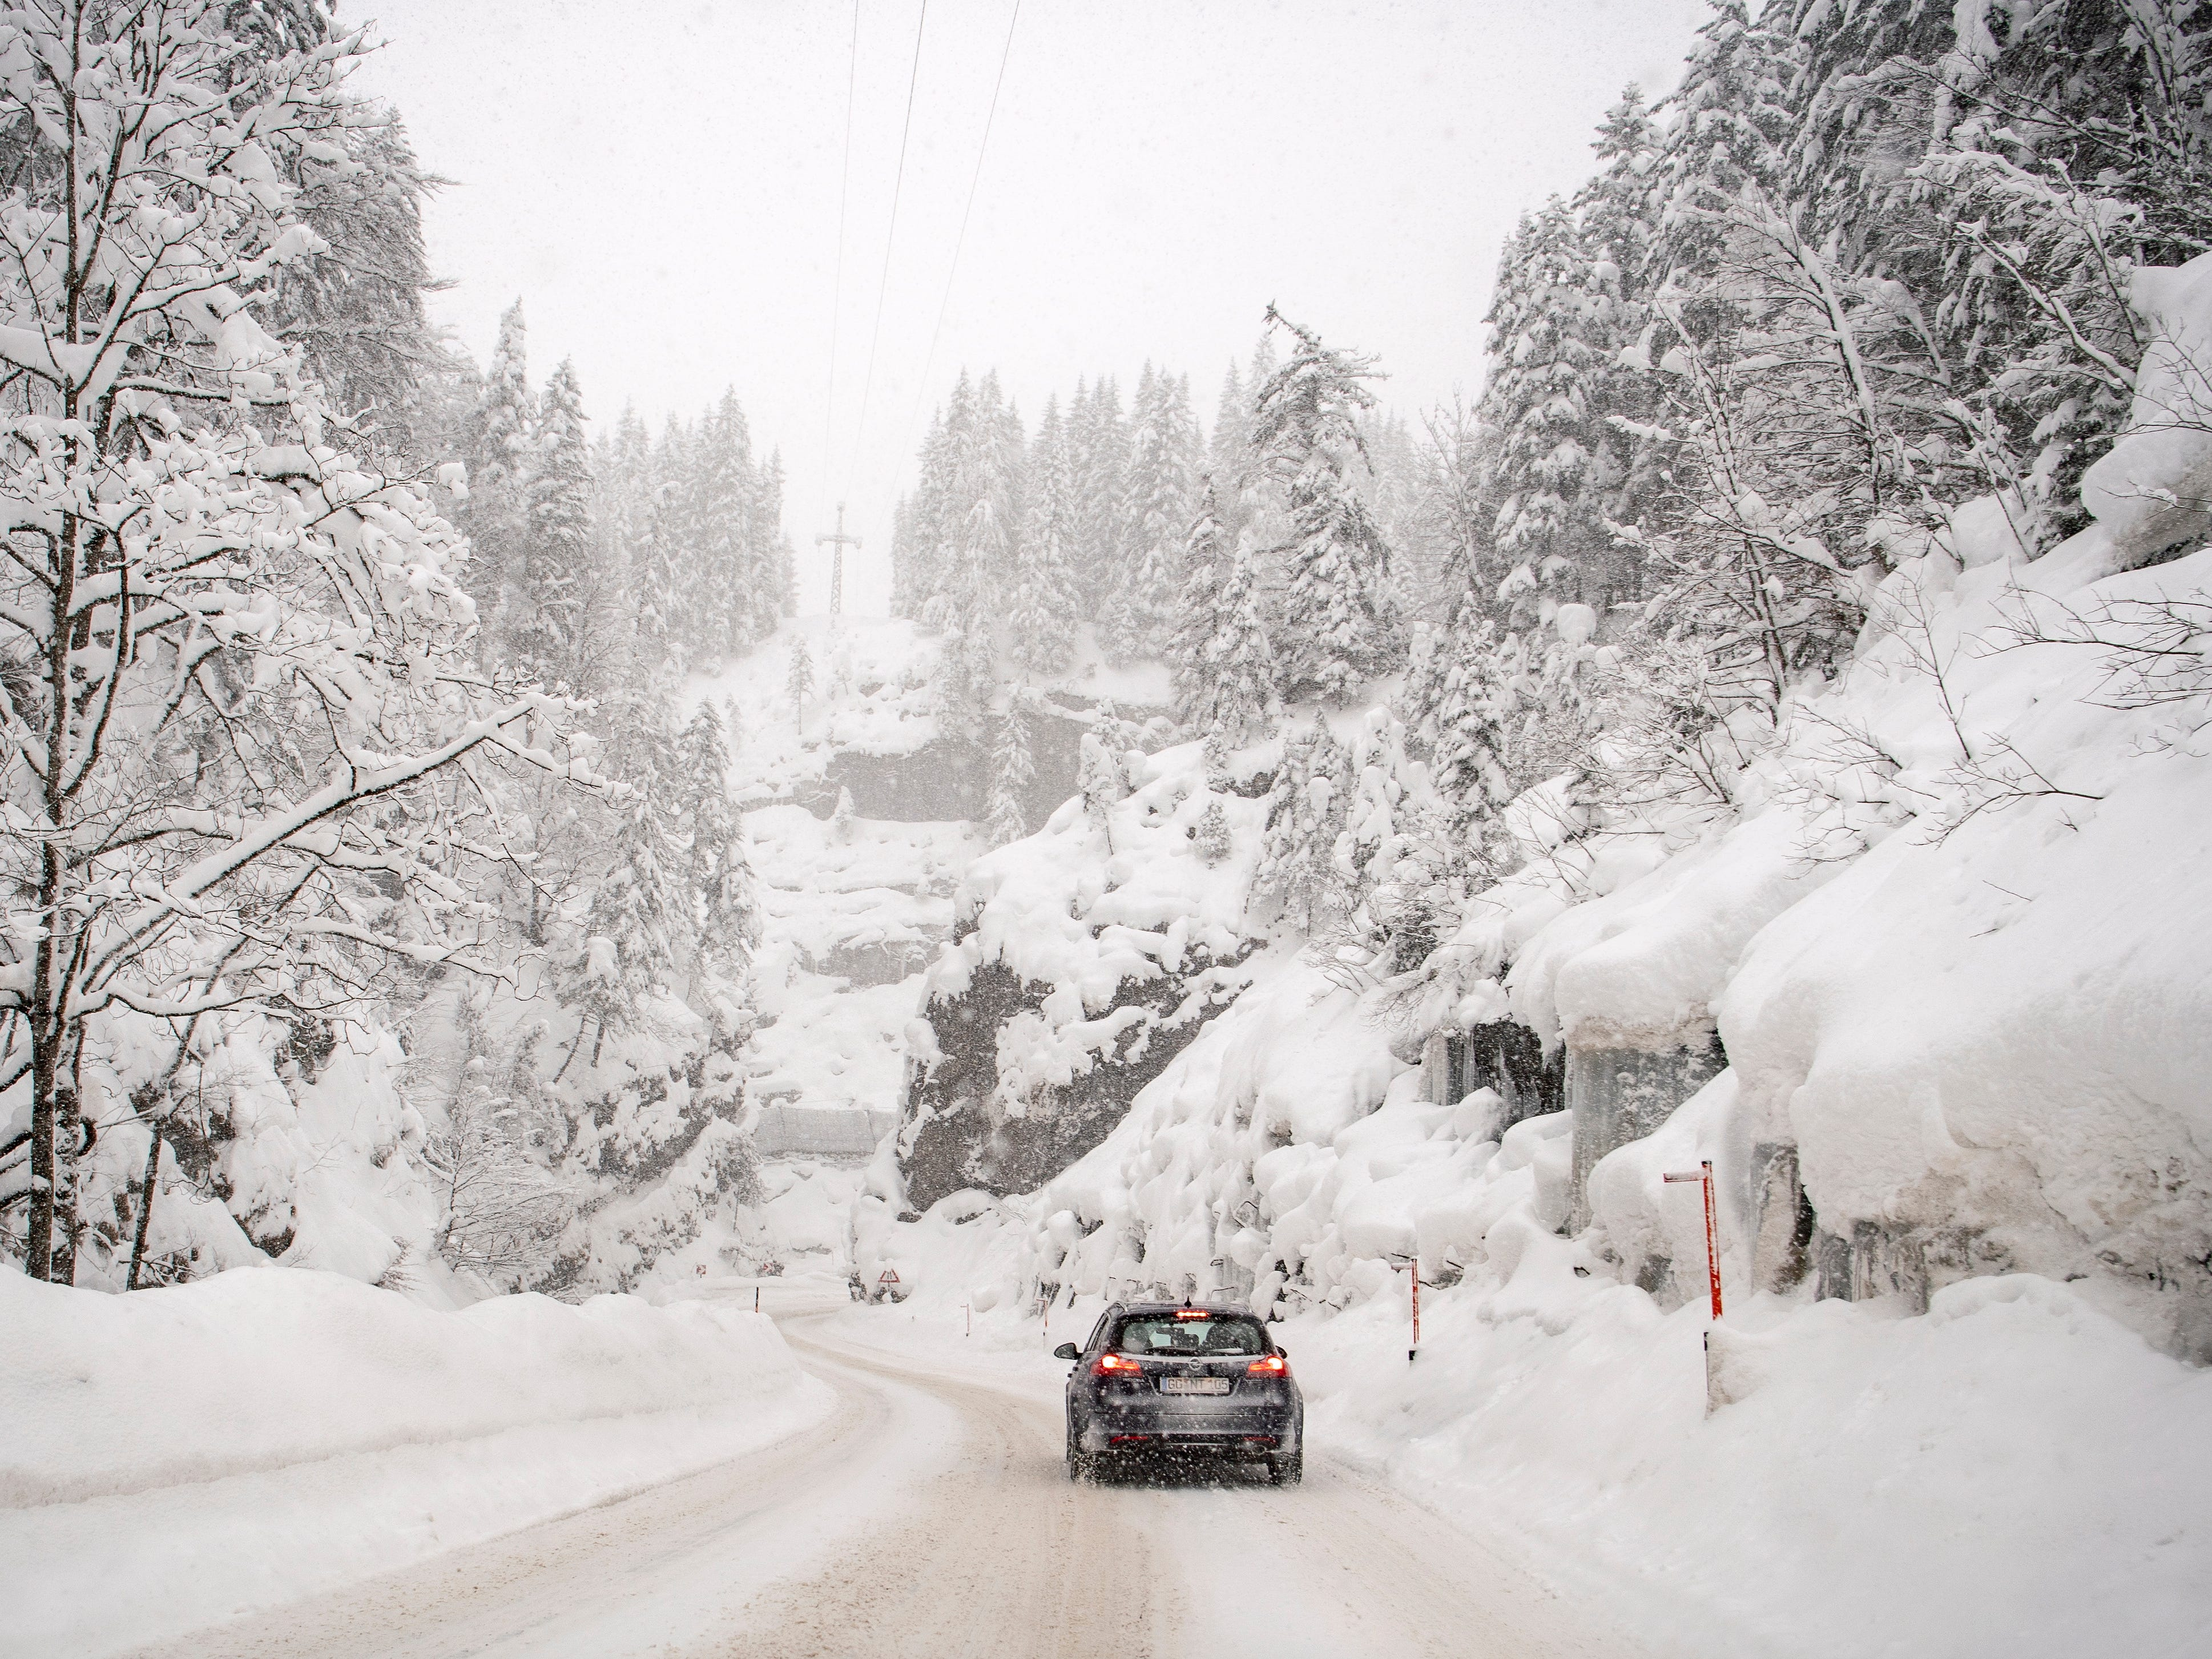 A car drives through a snow covered road during heavy snowfall near Obertauern, Austria on Jan. 5, 2019. Austria and southern Germany are expected to receive heavy snowfalls over the weekend. Weather forecasts warn that the snowstorm could cause roadblocks and increased avalanche danger in many parts of the affected region.